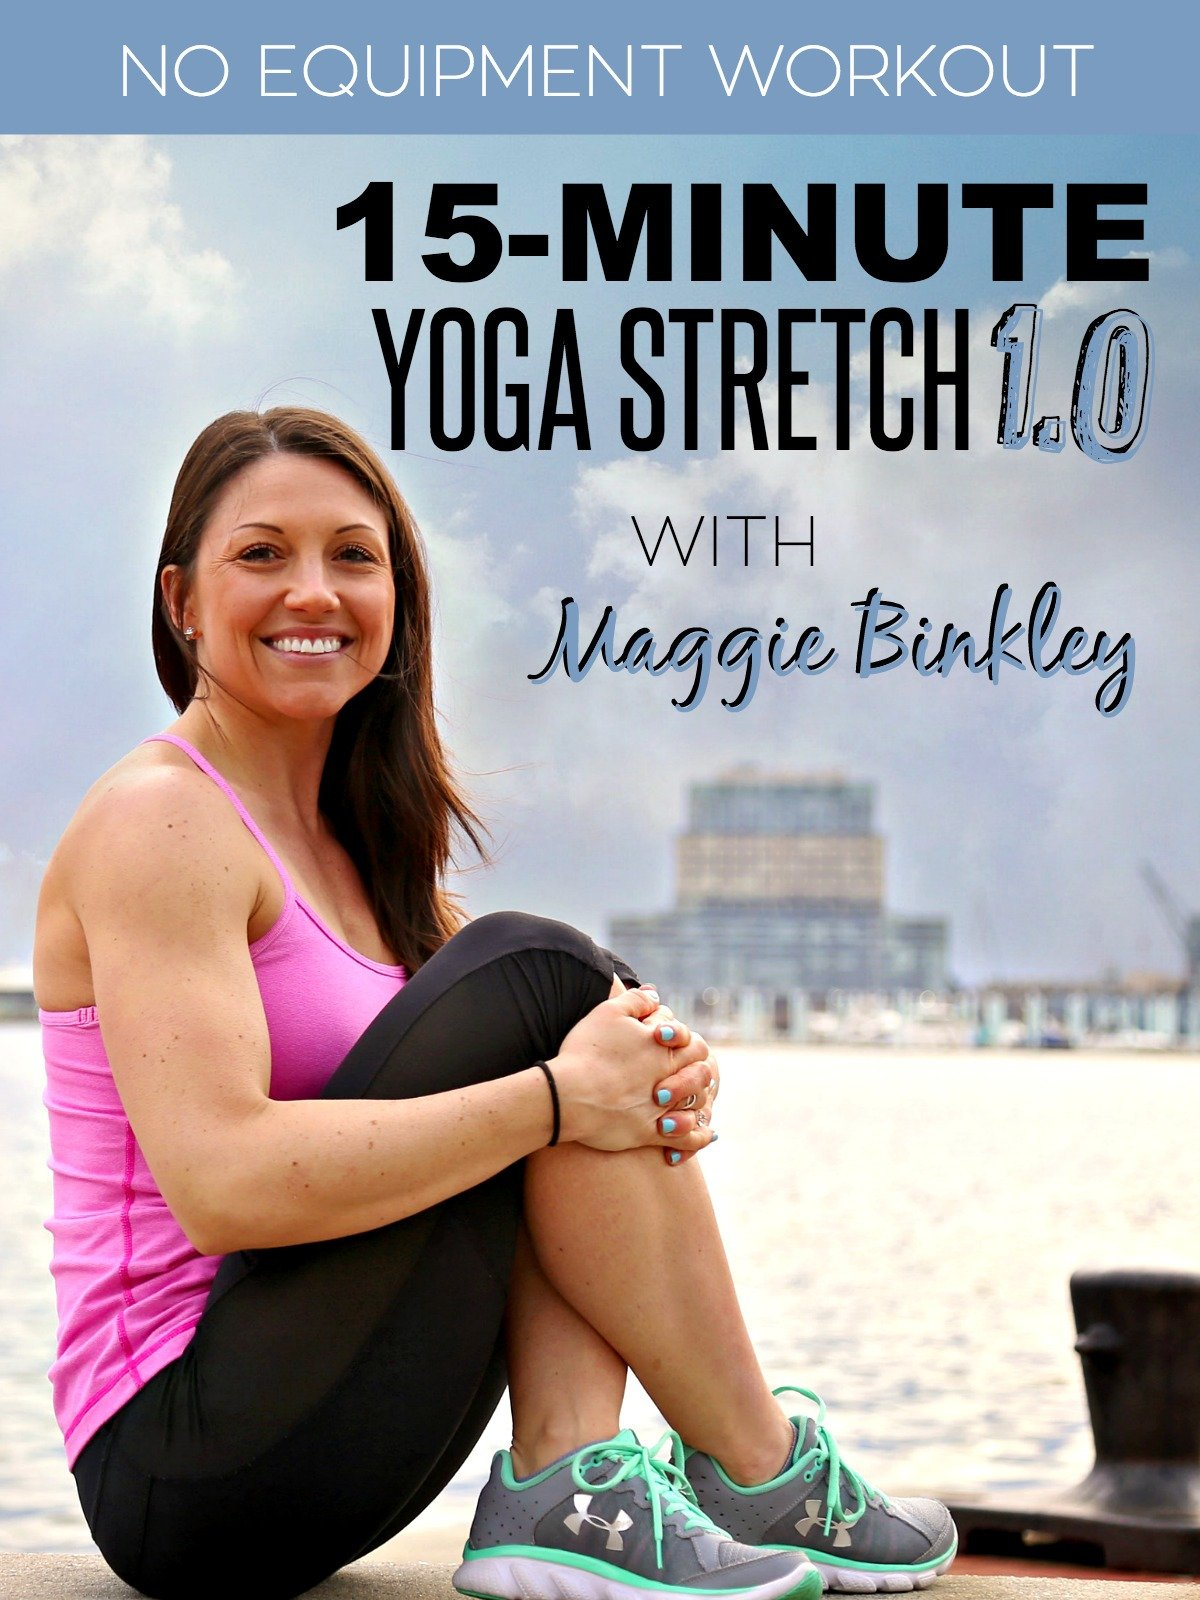 15-Minute Yoga Stretch 1.0 Workout